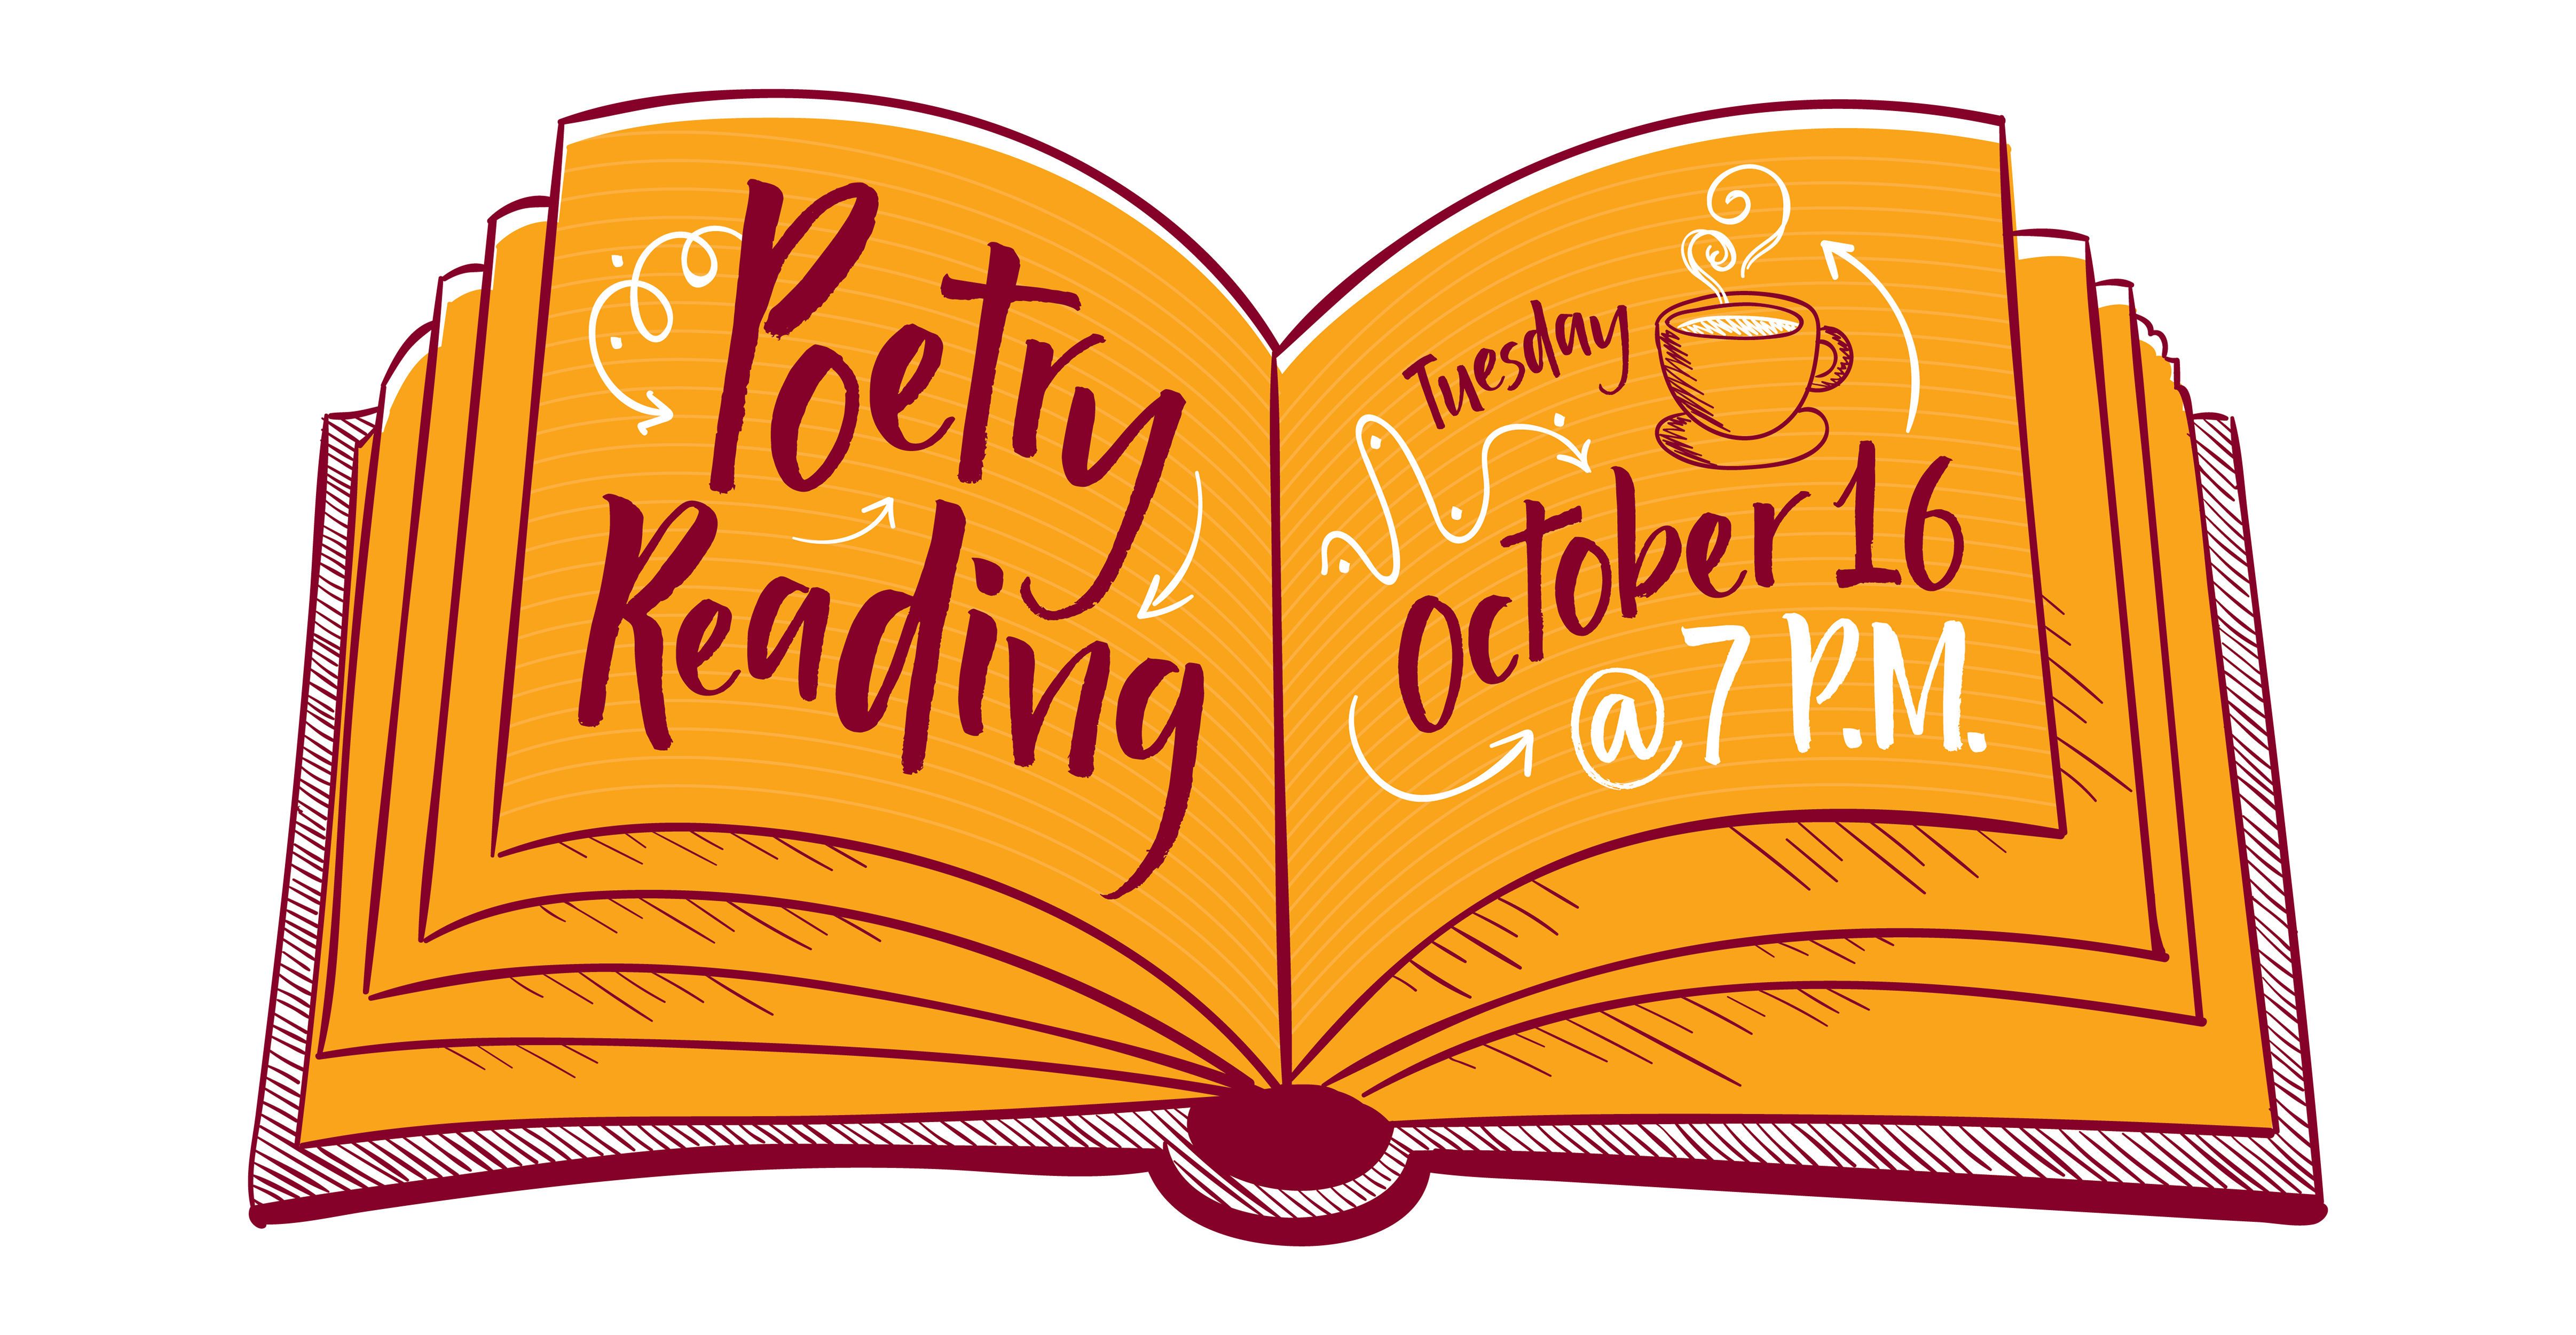 Poetry Reading - October 16 at 7:00 PM